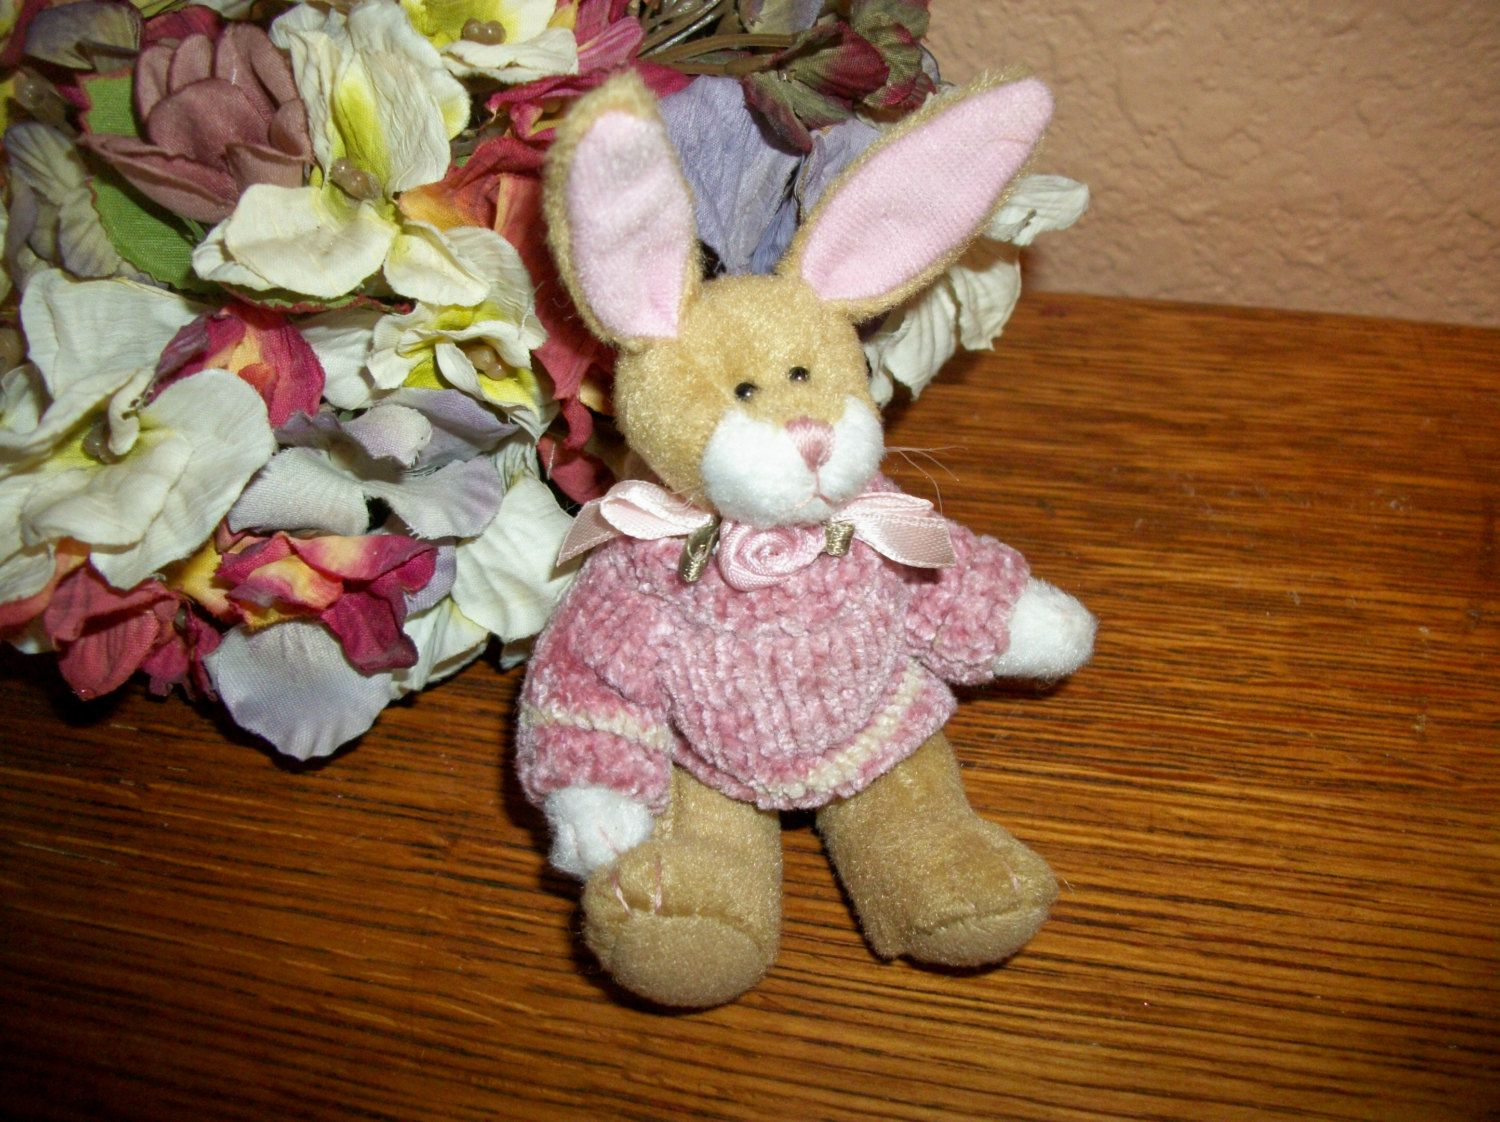 """Brown Bunny Rabbit 5"""" Stuffed Animal Pink Sweater Vintage  Easter Decoration Craft Supply Collectible by Bearington by Holiday365 on Etsy"""